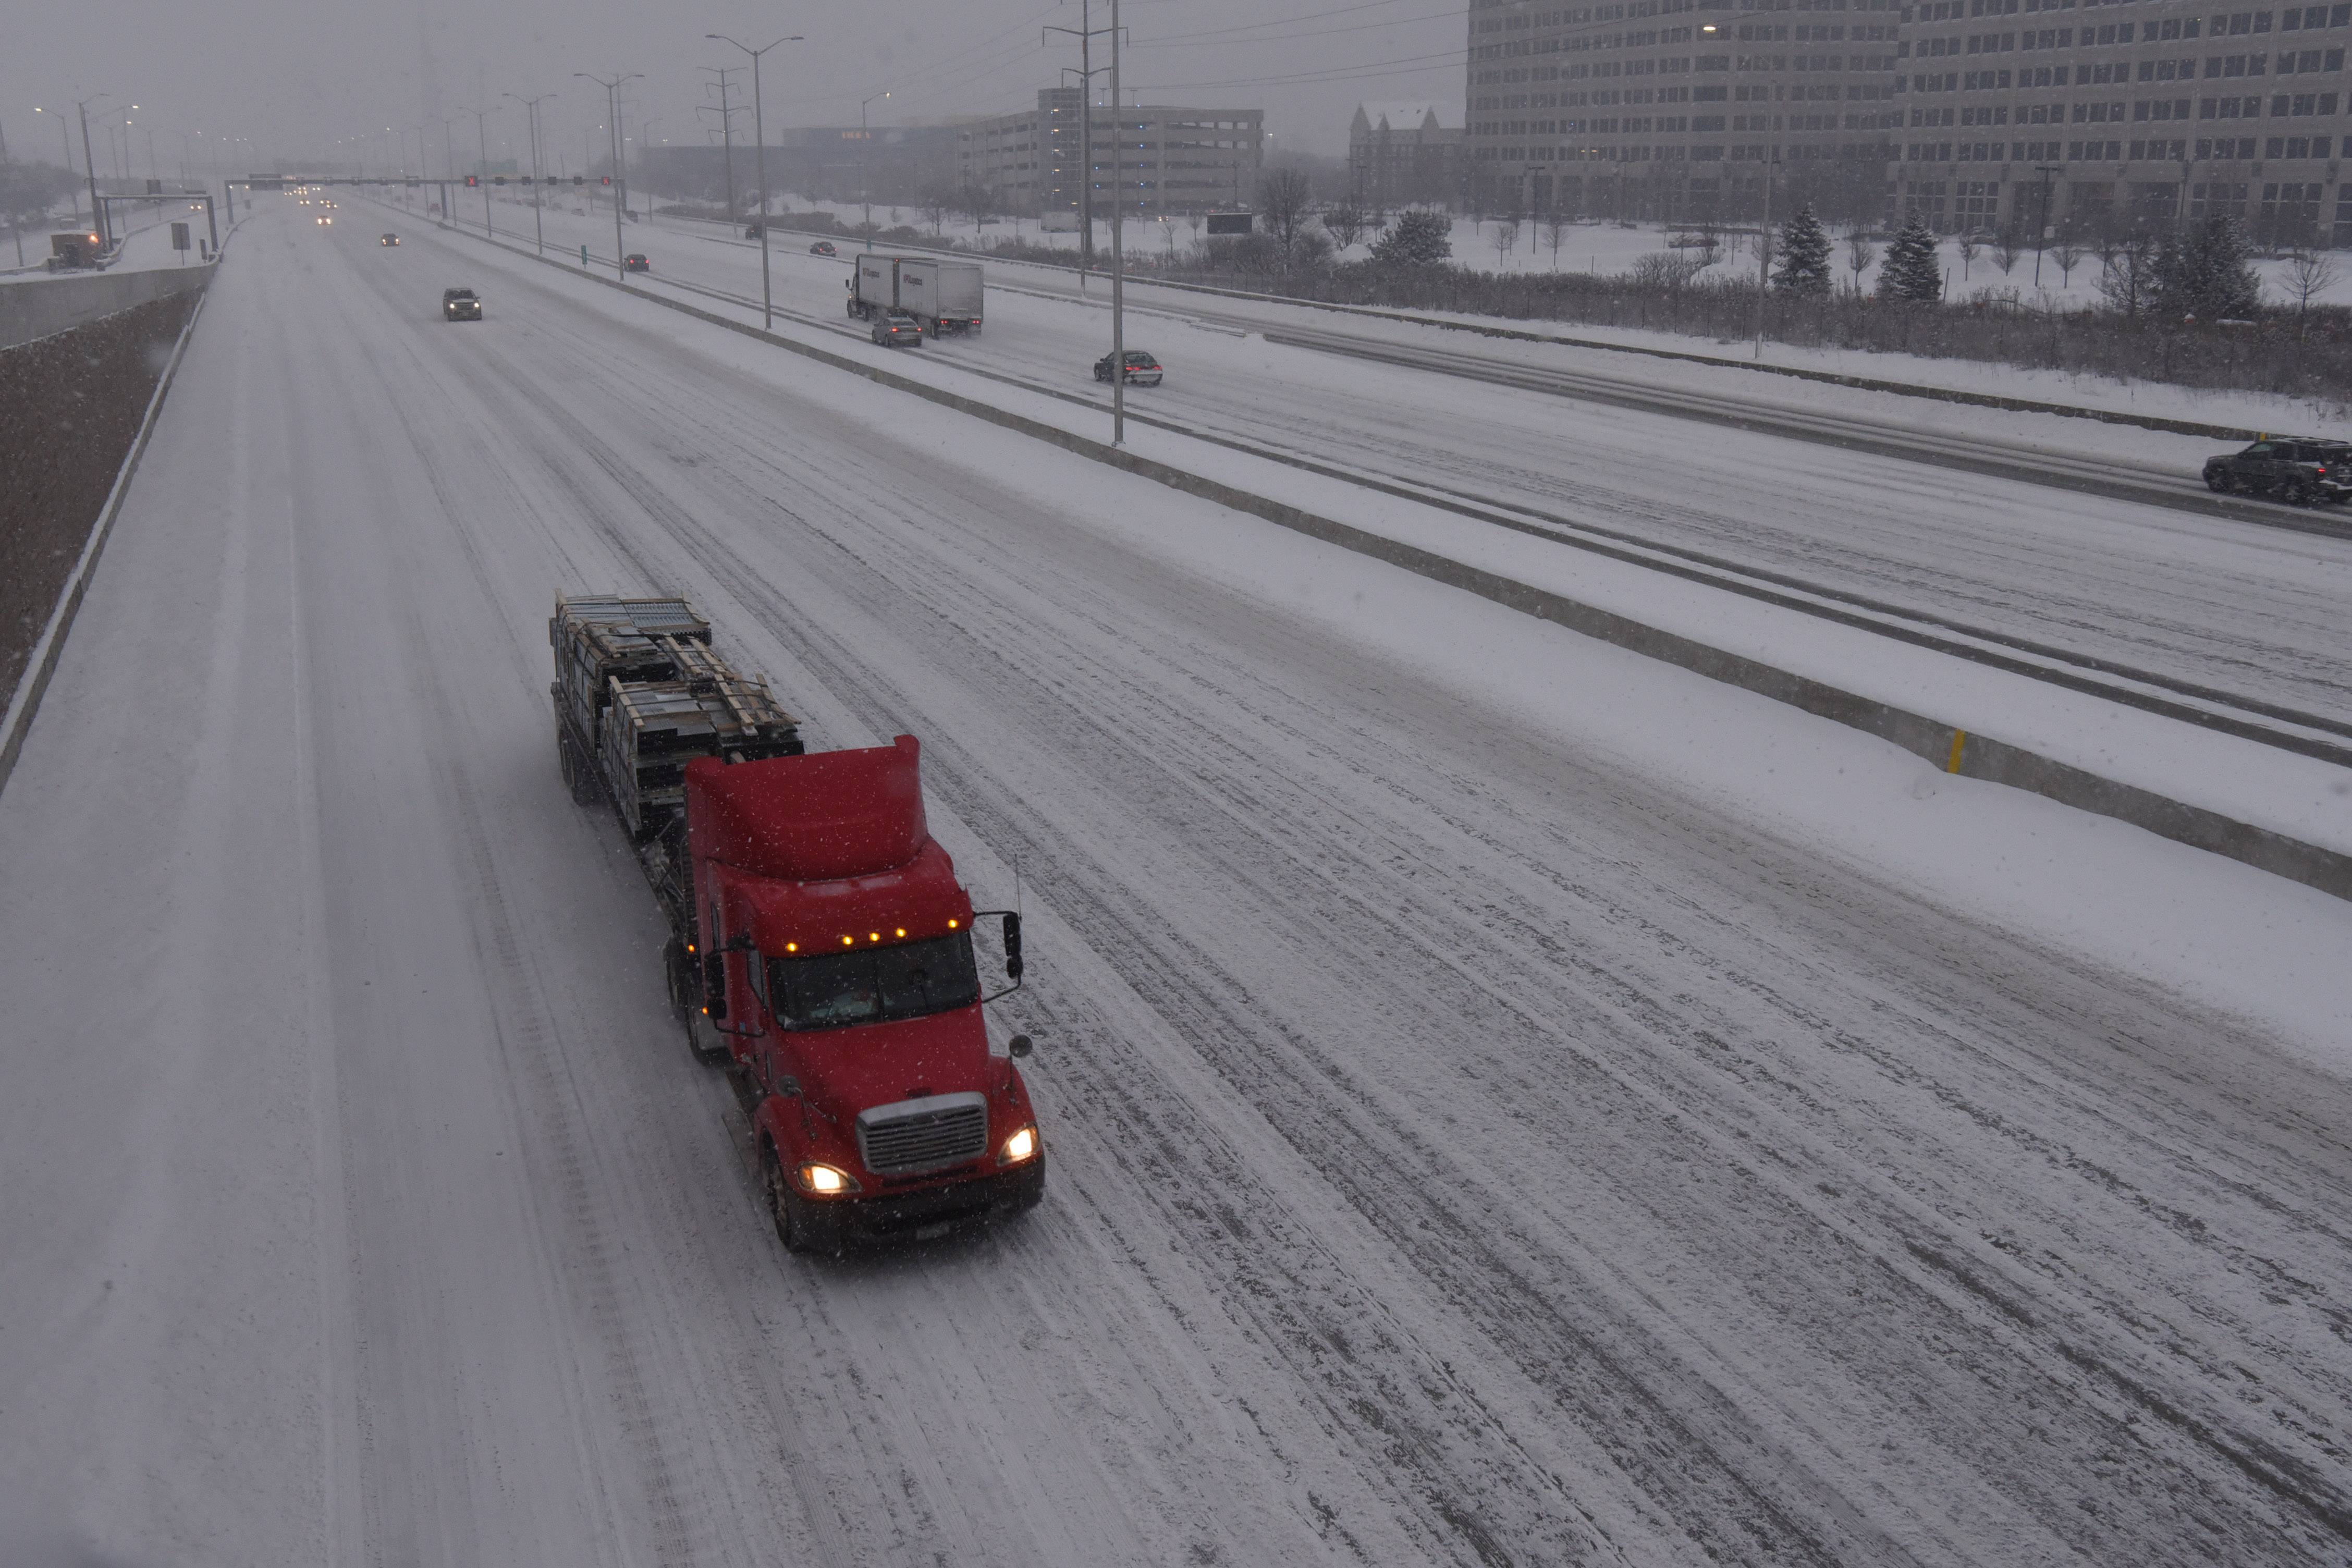 A truck carries a load of steel rolls westbound in a snowstorm on Interstate 90 at Meacham Road in Schaumburg during Friday morning's rush hour.